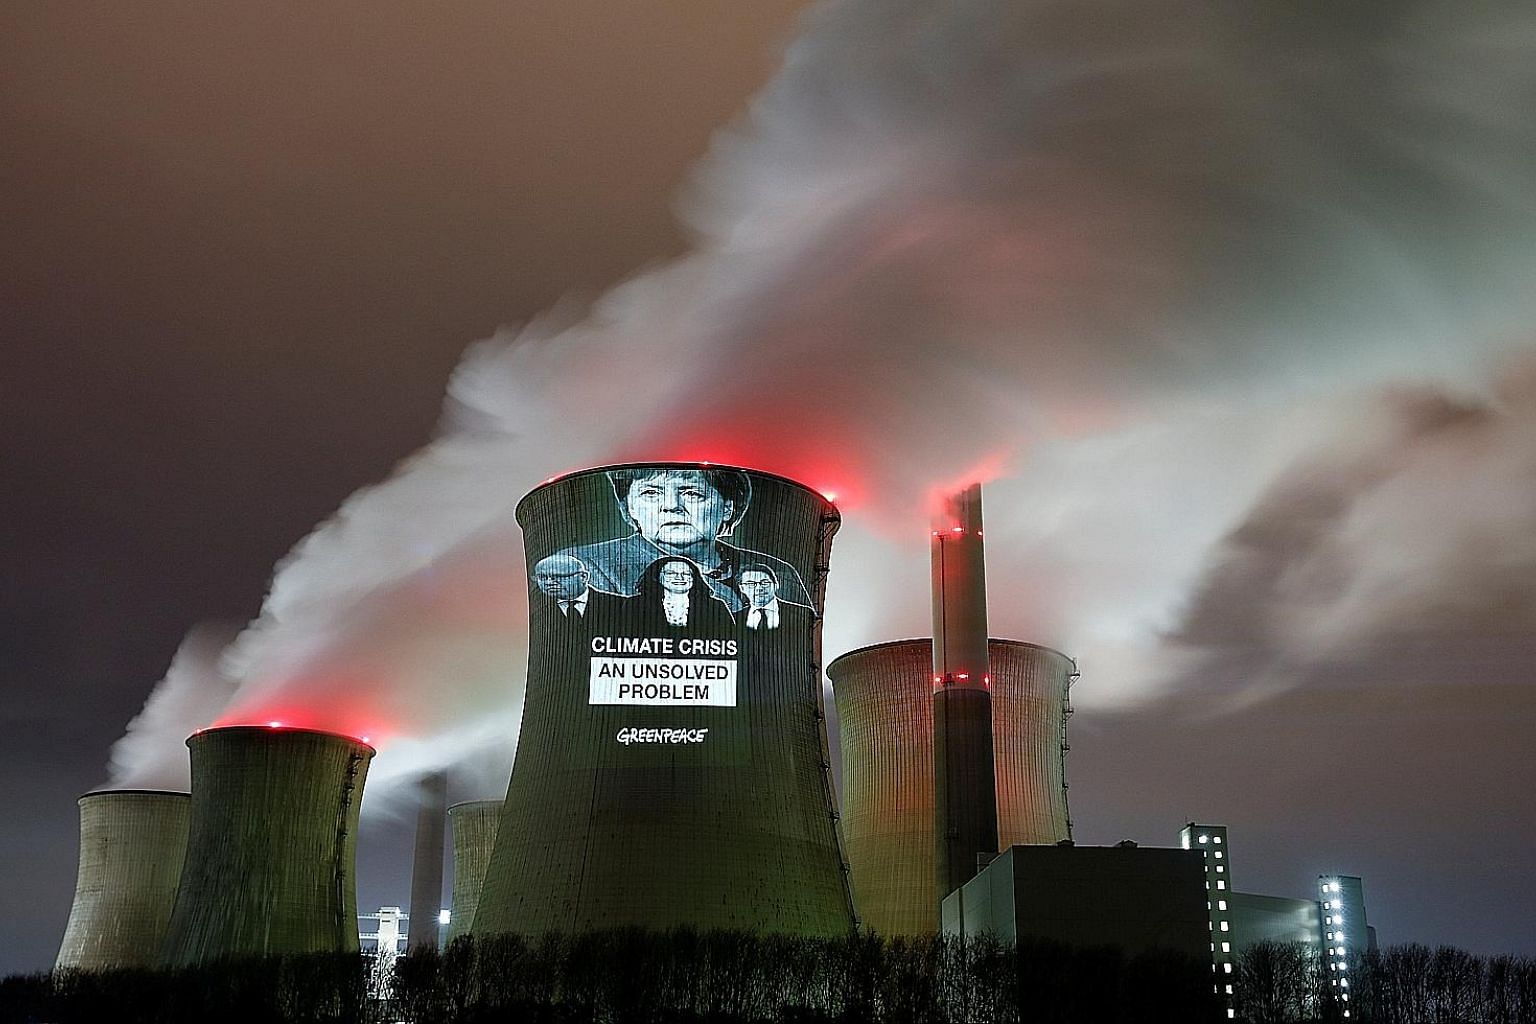 Images of German Chancellor Angela Merkel (top), and (from left) German Economy Minister Peter Altmaier, Social Democratic Party chairman Andrea Nahles and German Transport Minister Andreas Scheuer projected by Greenpeace activists on a cooling tower